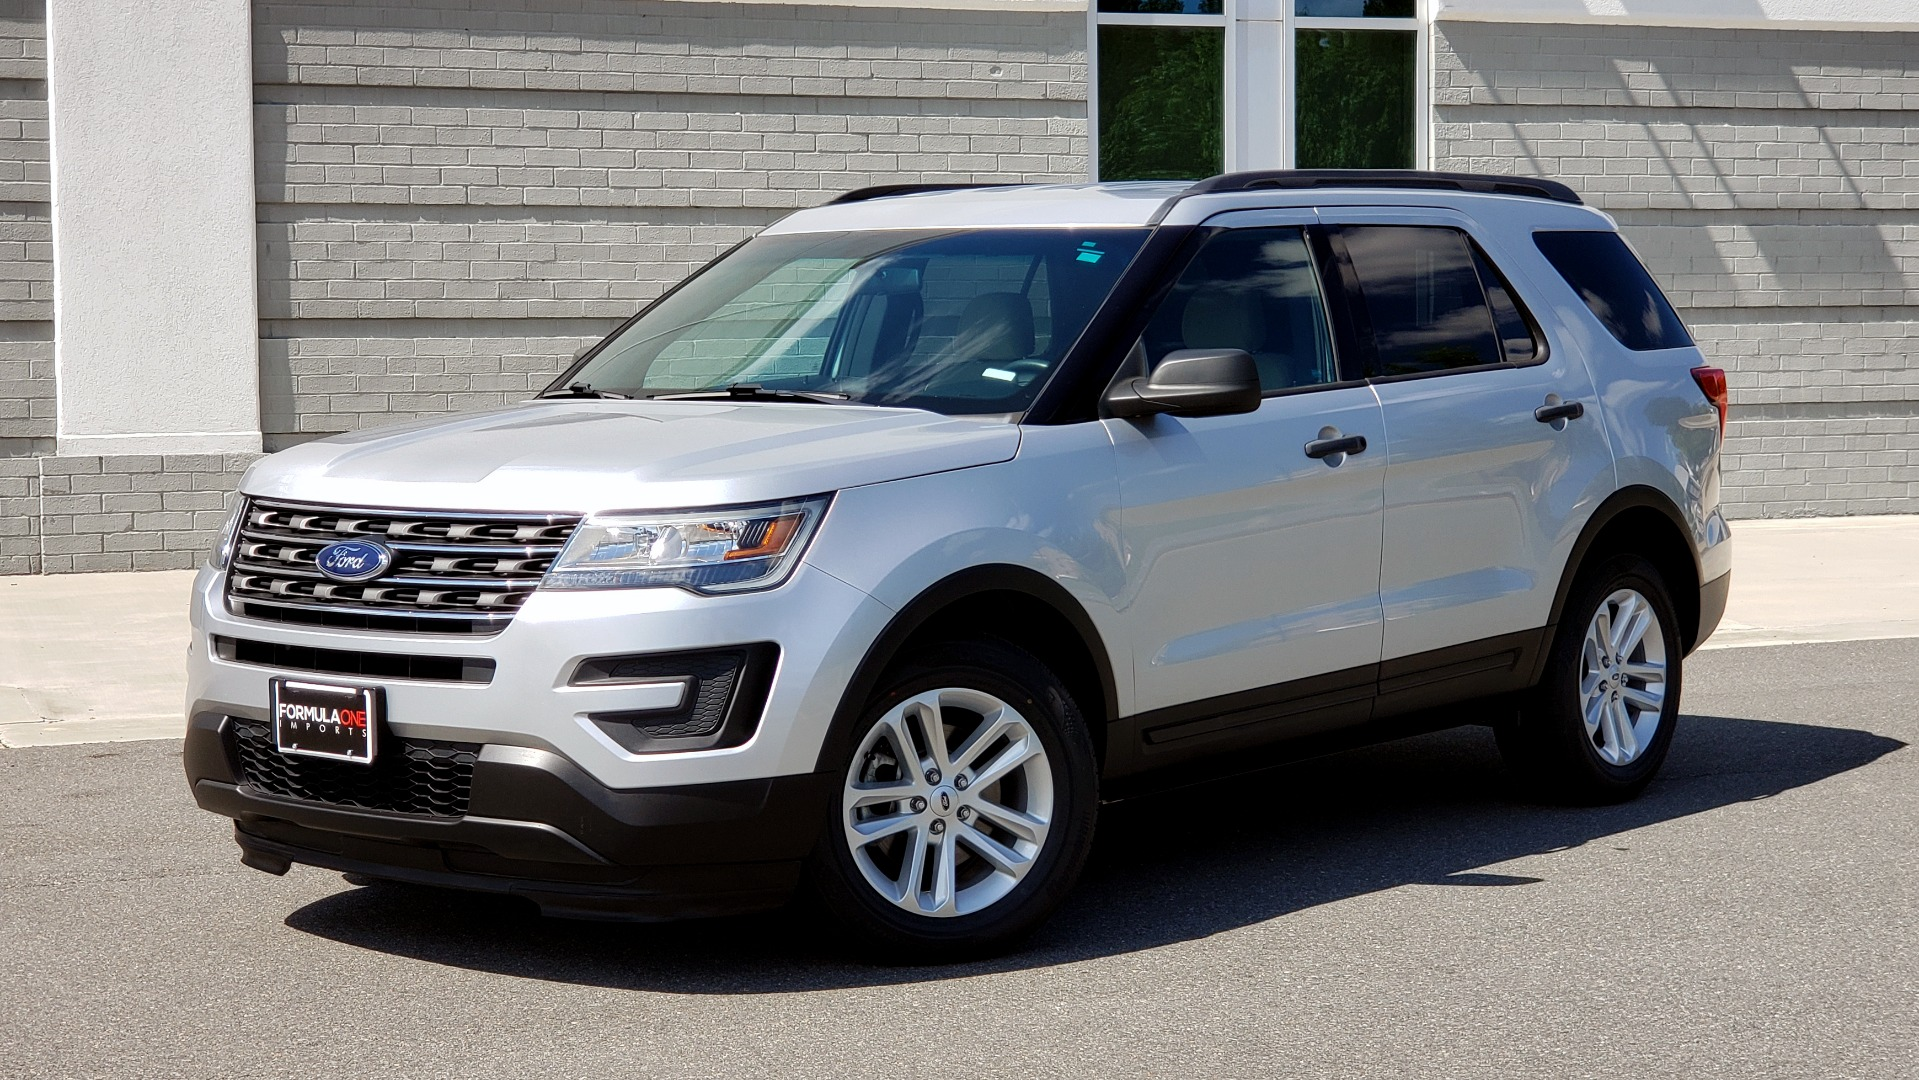 Used 2017 Ford EXPLORER 3.5L V6 / 6-SPD AUTO / BLIND SPOT MONITOR / 3-ROW / SYNC / REARVIEW for sale $22,995 at Formula Imports in Charlotte NC 28227 1